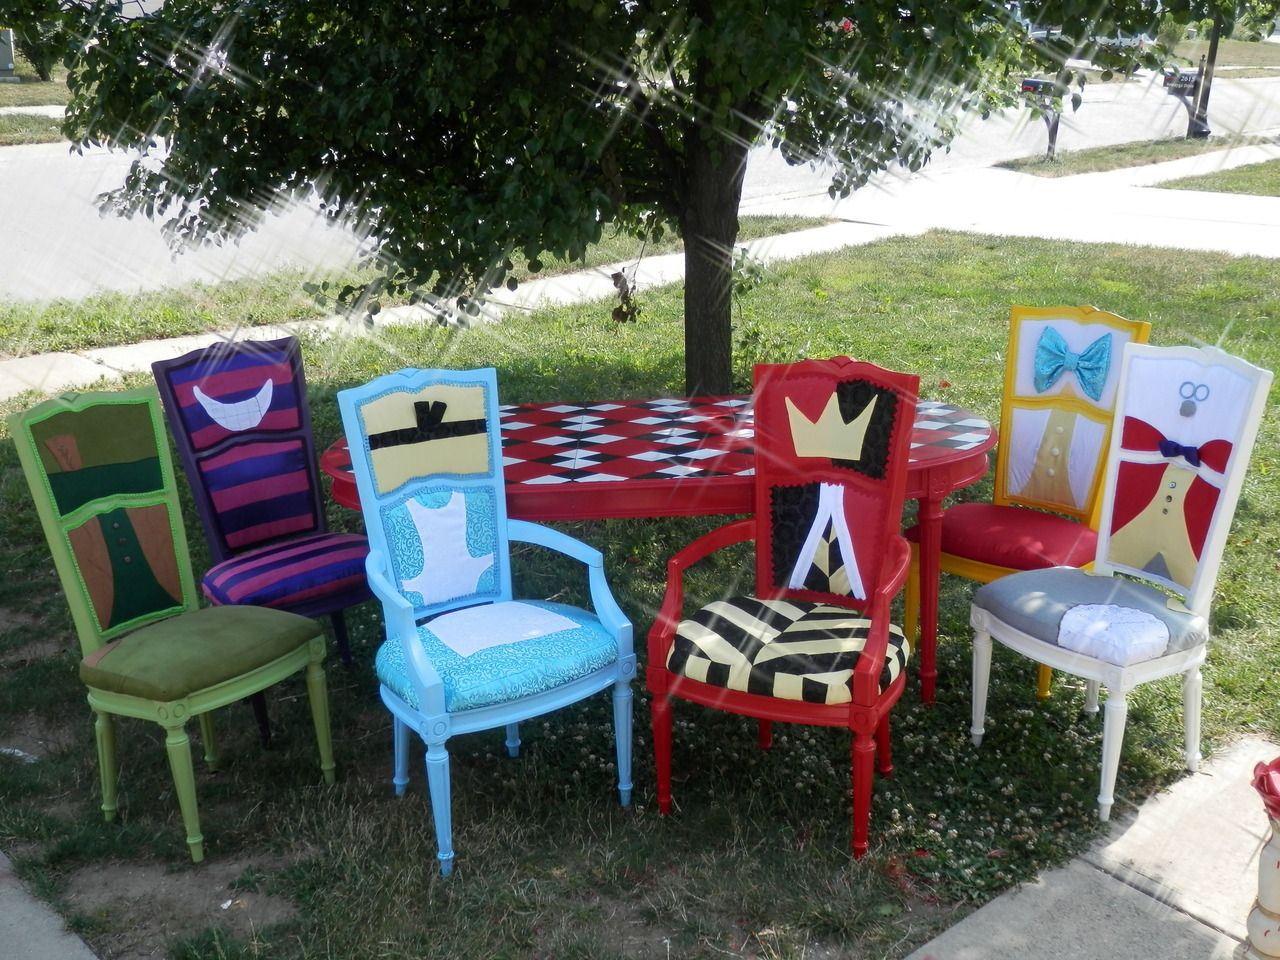 alice in wonderland chair high chairs heck yeah disney merch dining table i